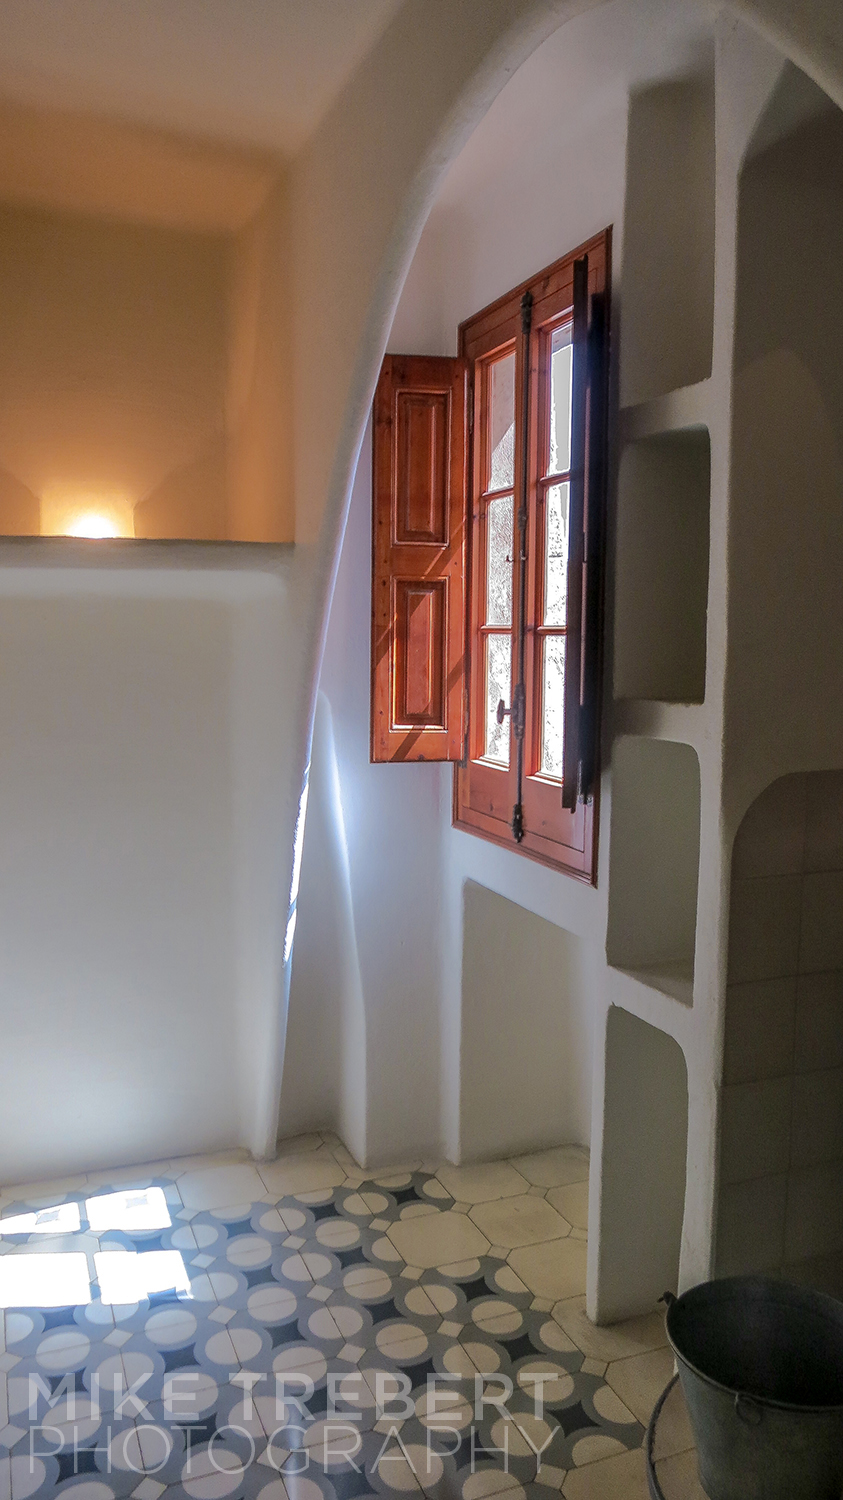 The corner of a small room on the top floor of Casa Batilo. Maybe a work room or staff quarters.